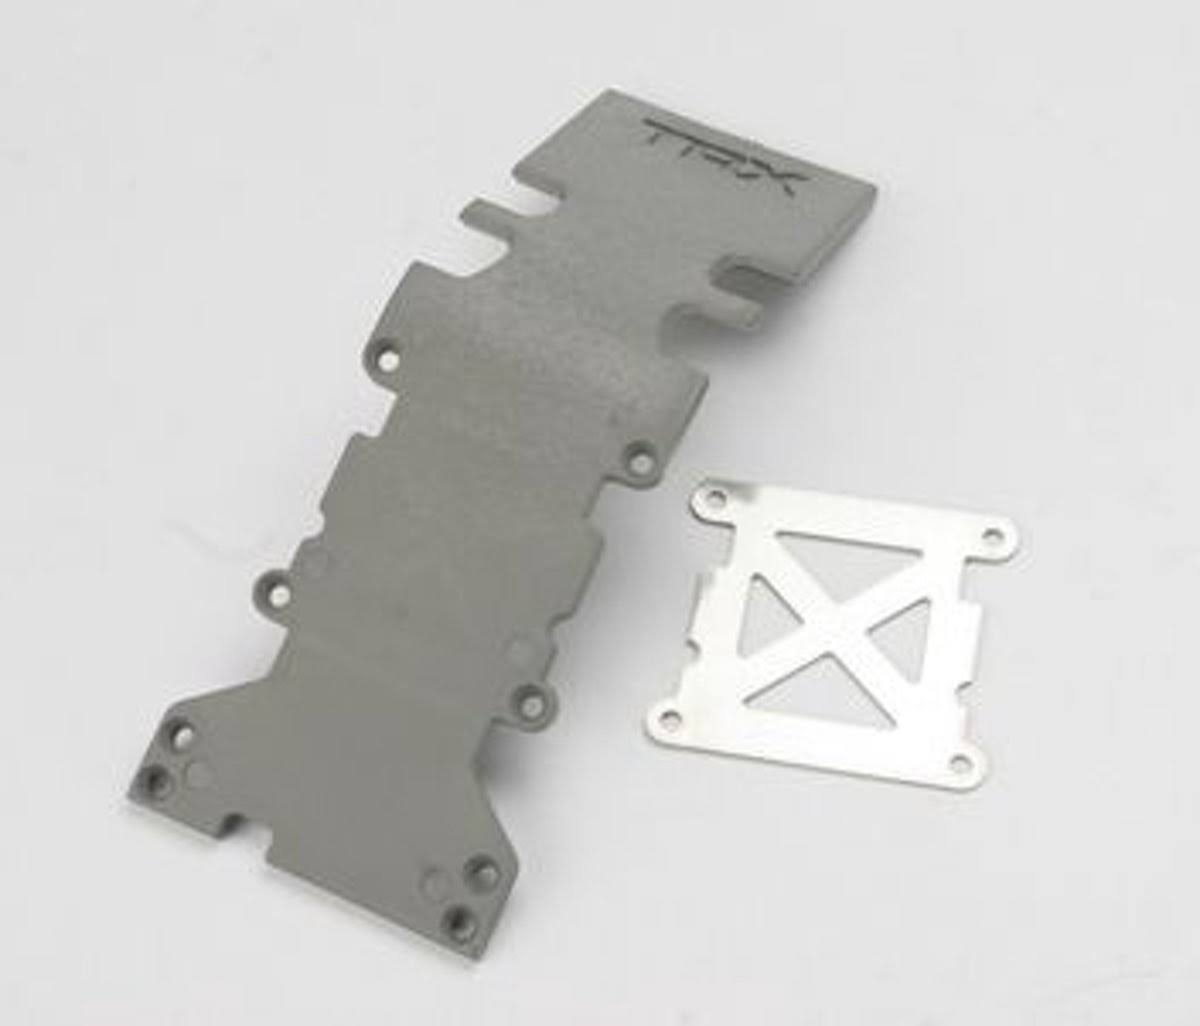 Traxxas 4938A E-maxx Brushless Rear Skid Plate - Grey